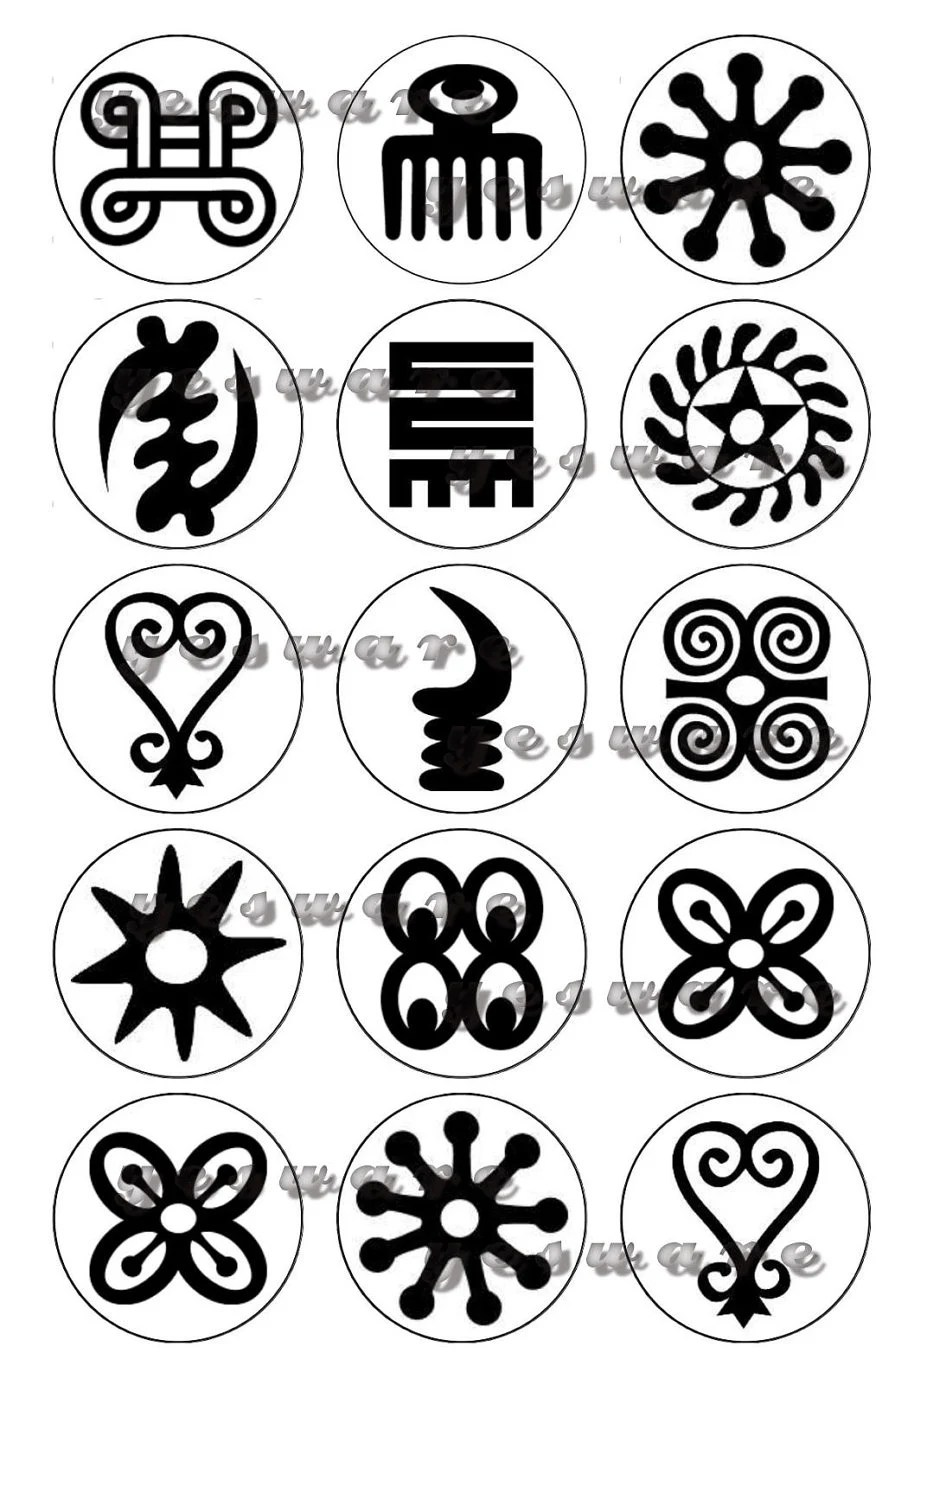 ADINKRA Tribal Images black and white Digital 1 by TimeWaves